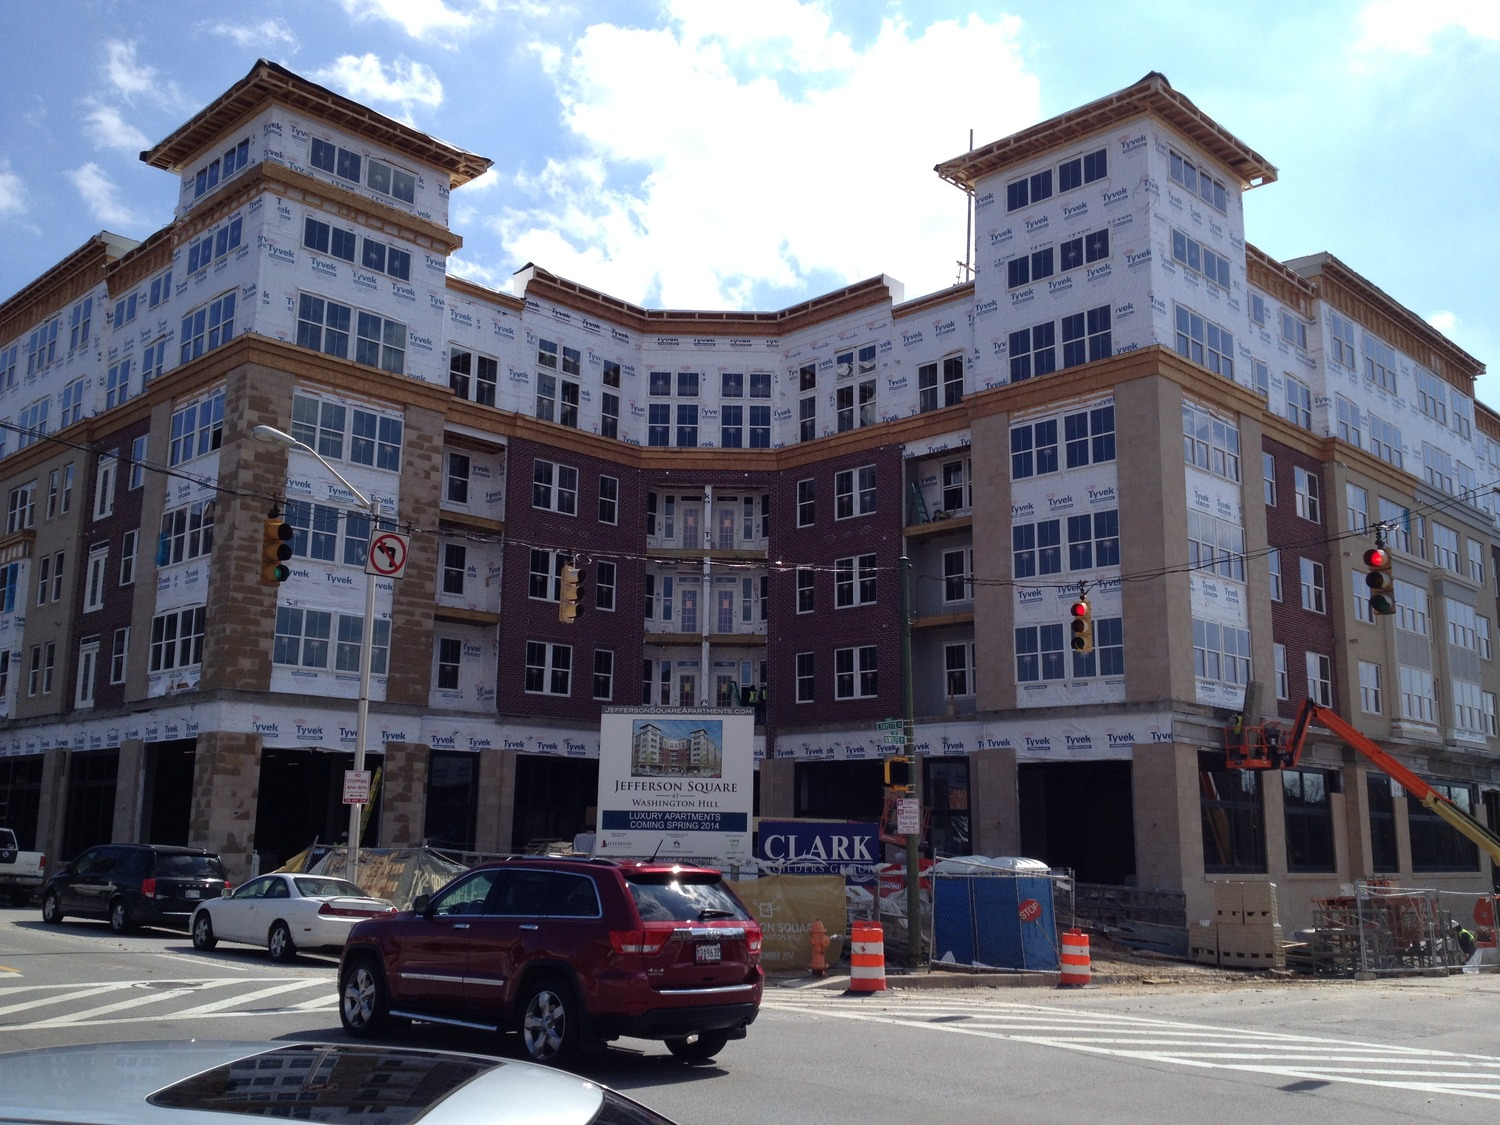 CBG builds Jefferson Square at Washington Hill, a 304-Unit Mixed-Use Apartment Community with Cast-in-Place Parking Garage in Baltimore, MD - Image #12